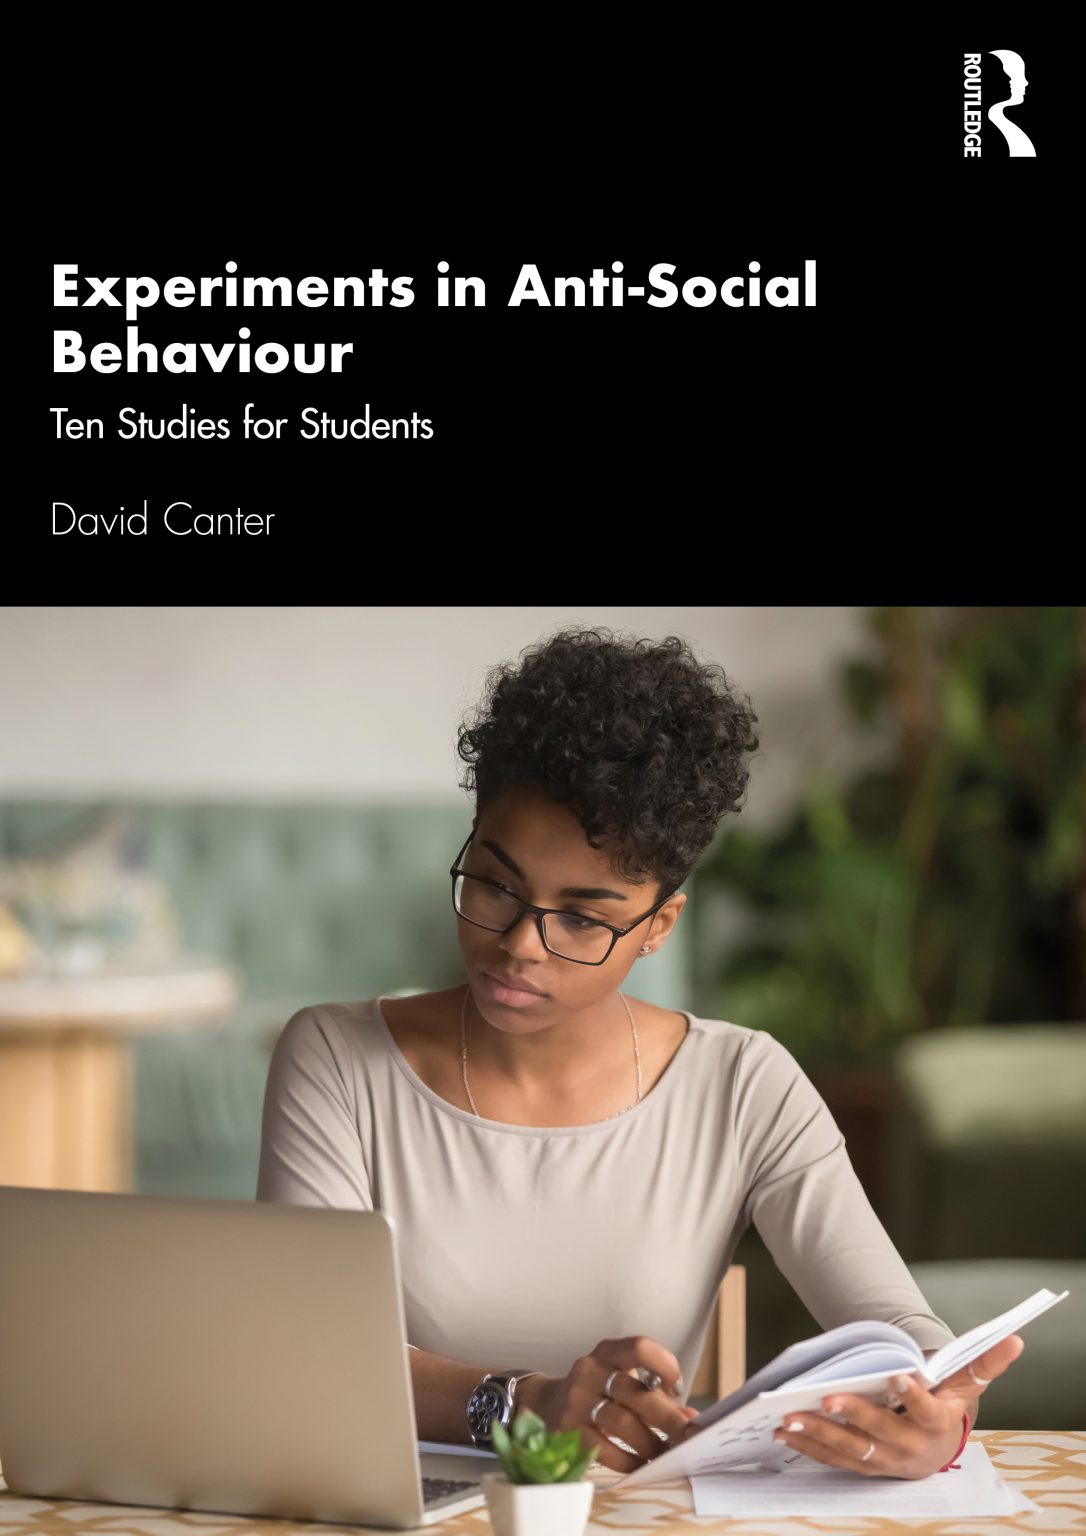 Experiments in Anti-Social Behaviour by Professor David Canter